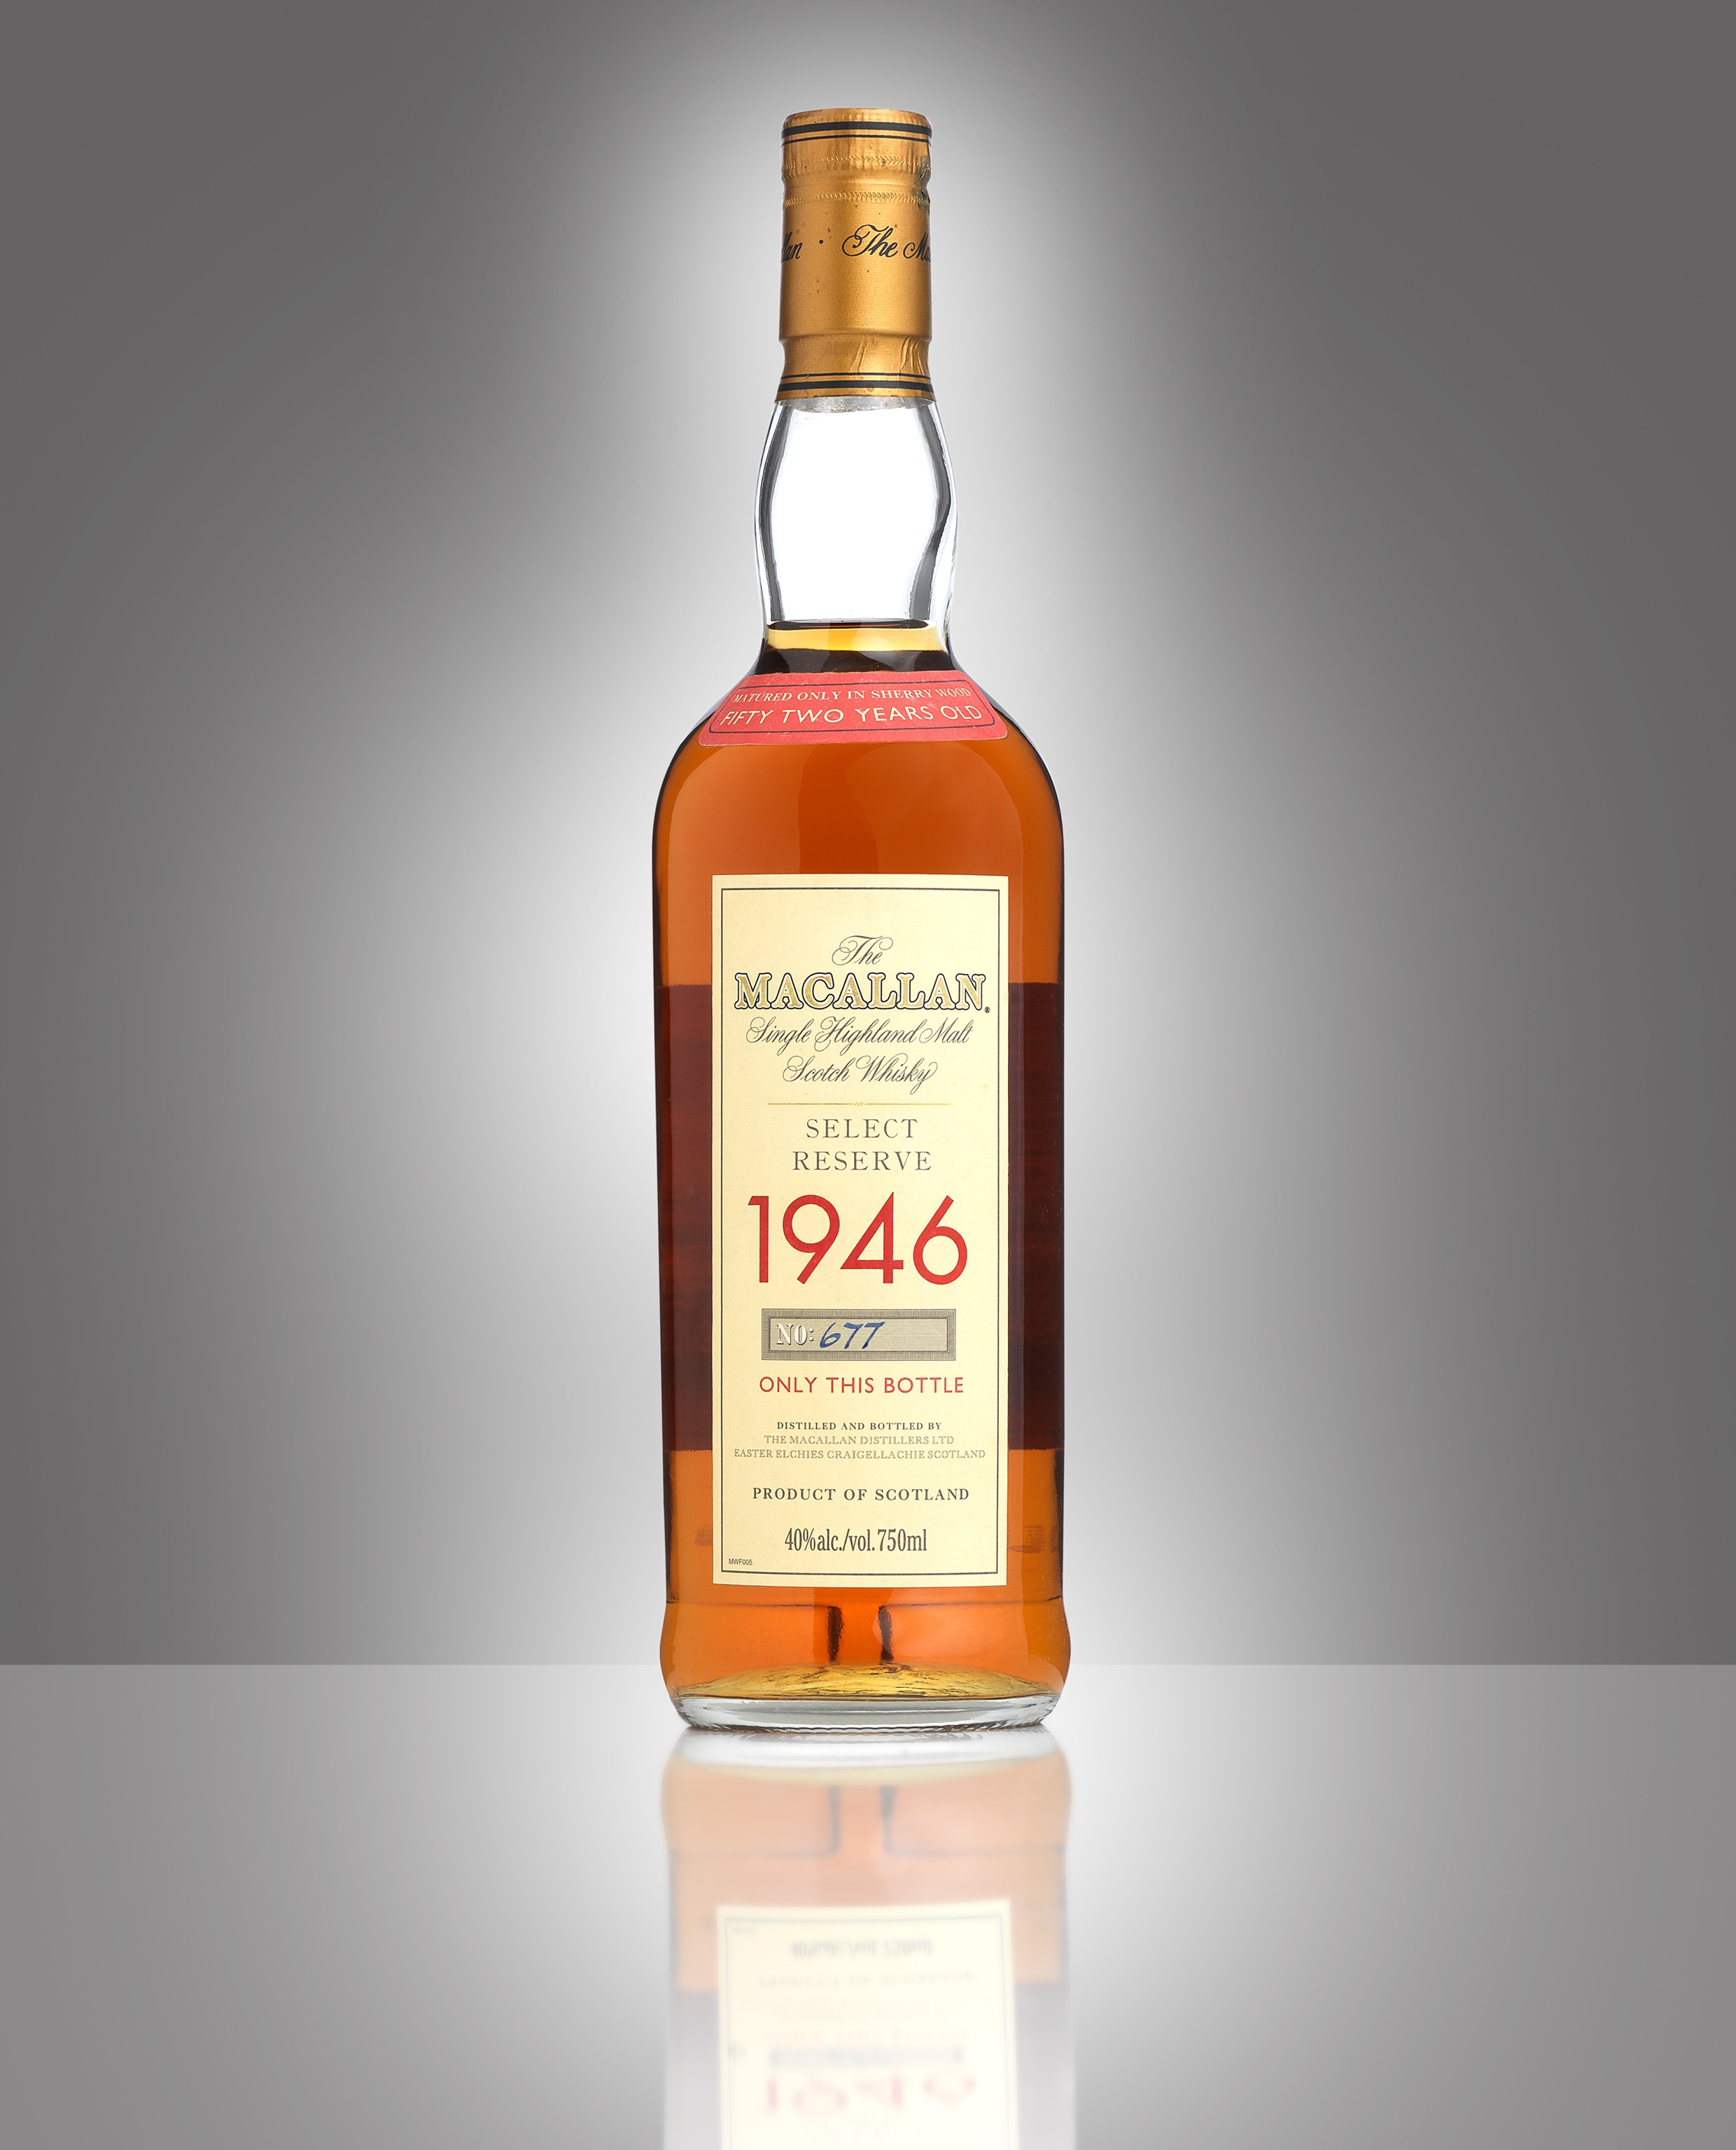 The Macallan Select Reserve-52 year old-1946 - Image 2 of 2